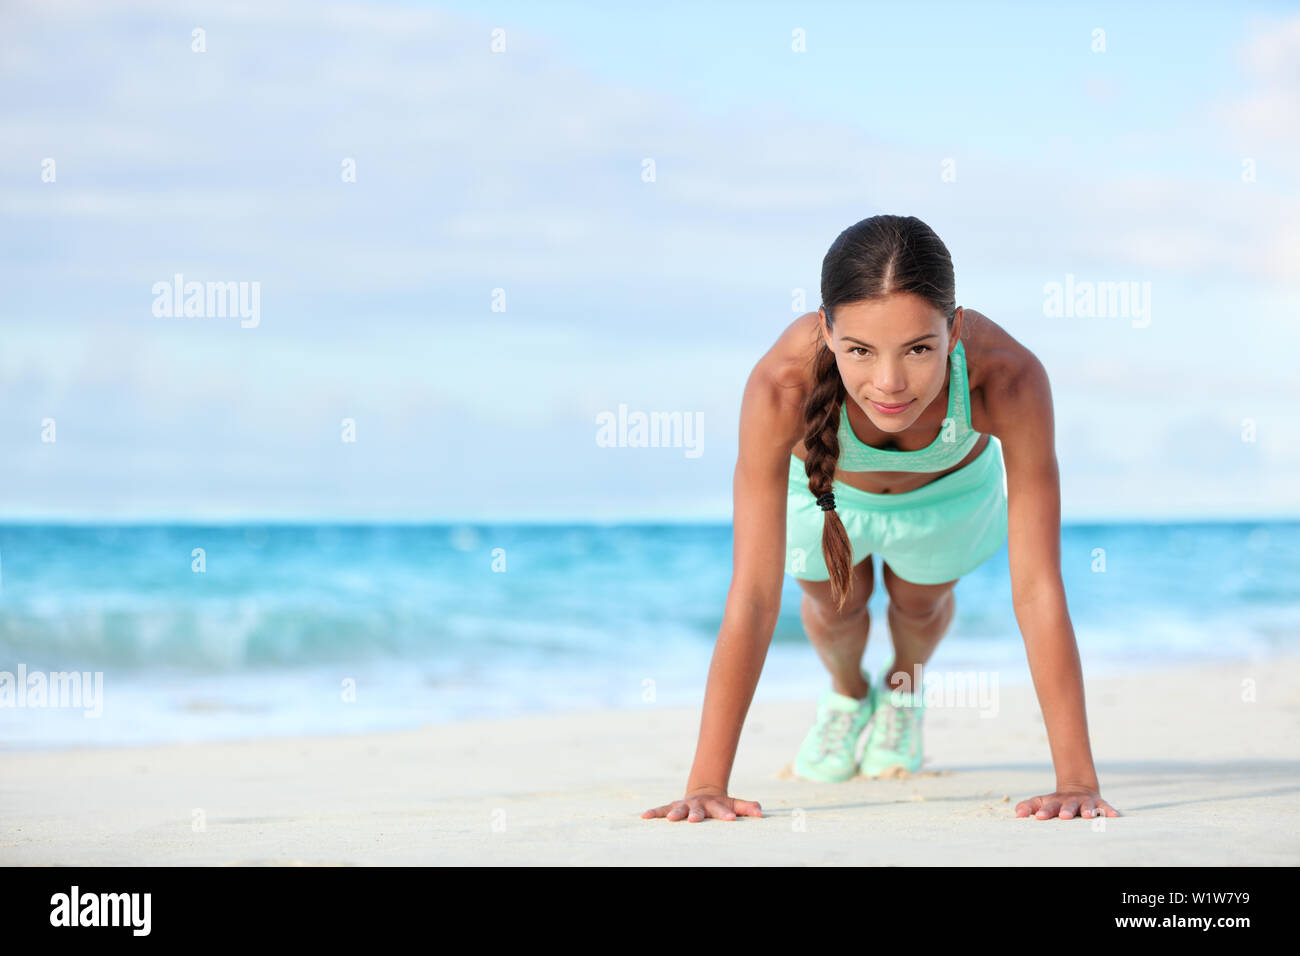 Fitness beach woman smiling planking doing yoga exercises. Happy Asian girl training her abs exercising her core muscles with the plank pose. - Stock Image